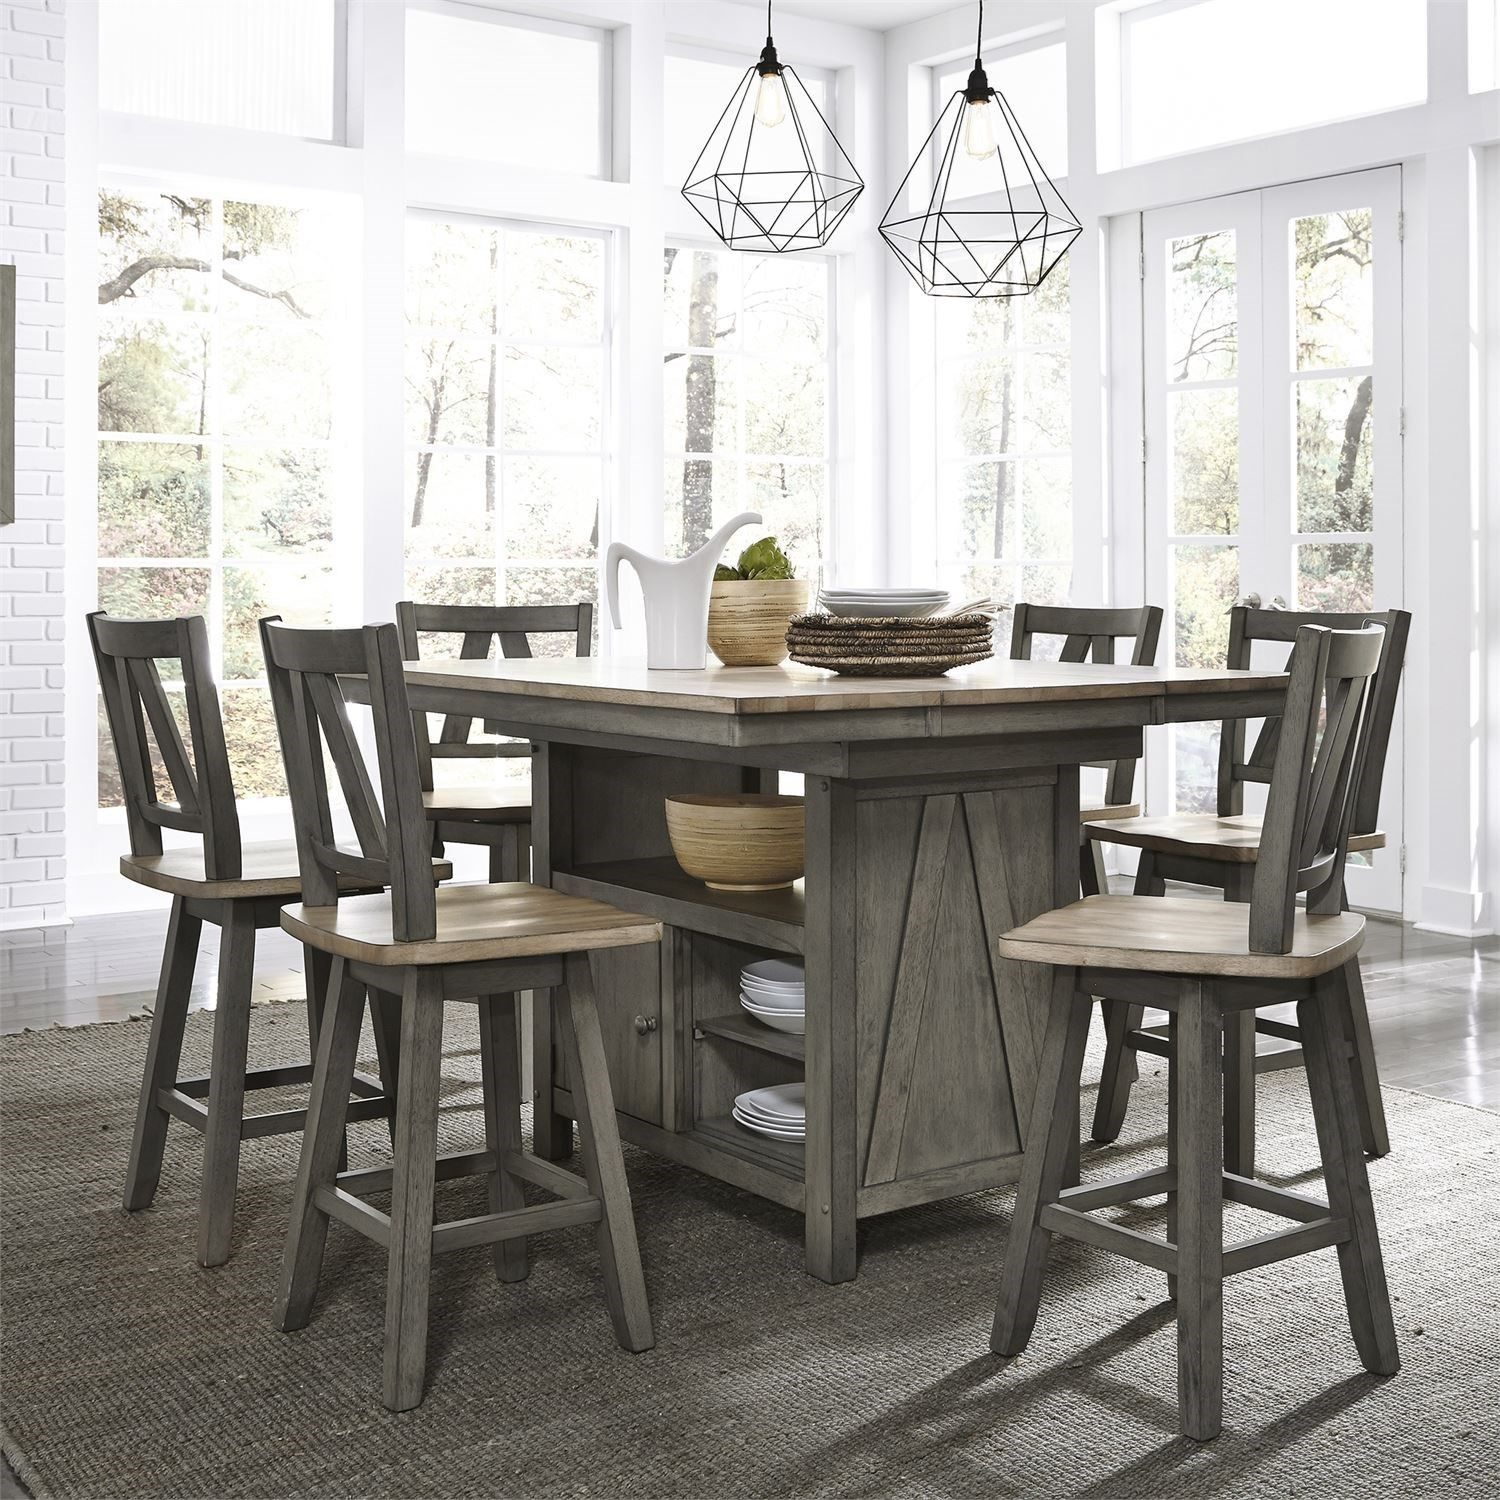 Transitional Two Toned 7 Piece Gathering Table Set By Liberty